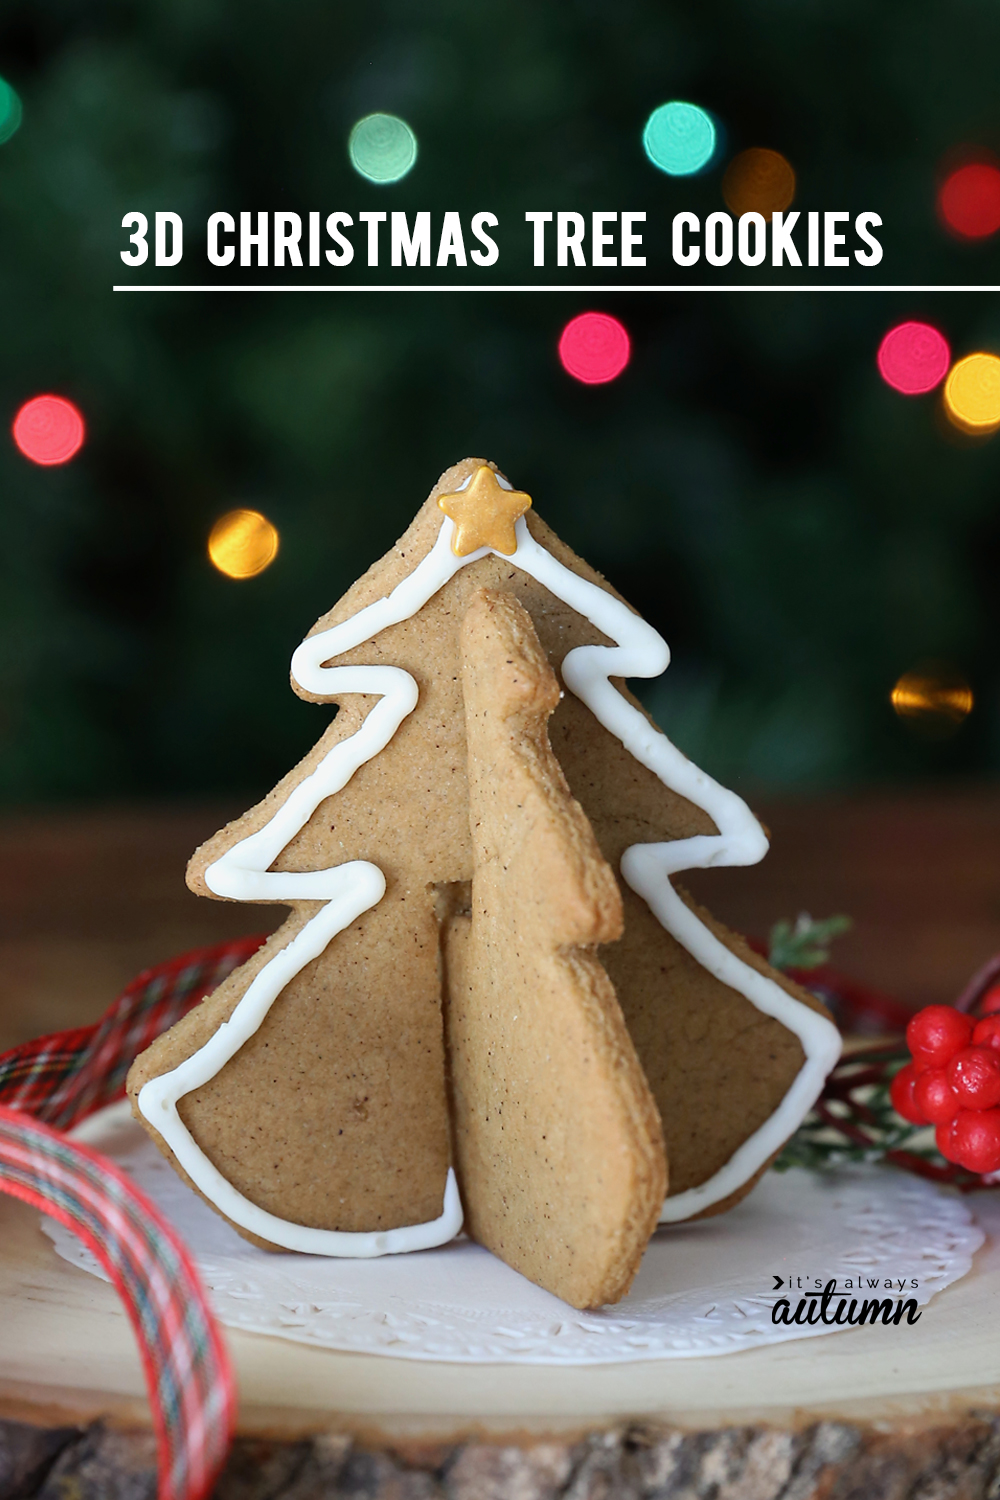 These 3D Christmas cookies are so cute! Click through to learn how to make standing 3D gingerbread cookies.